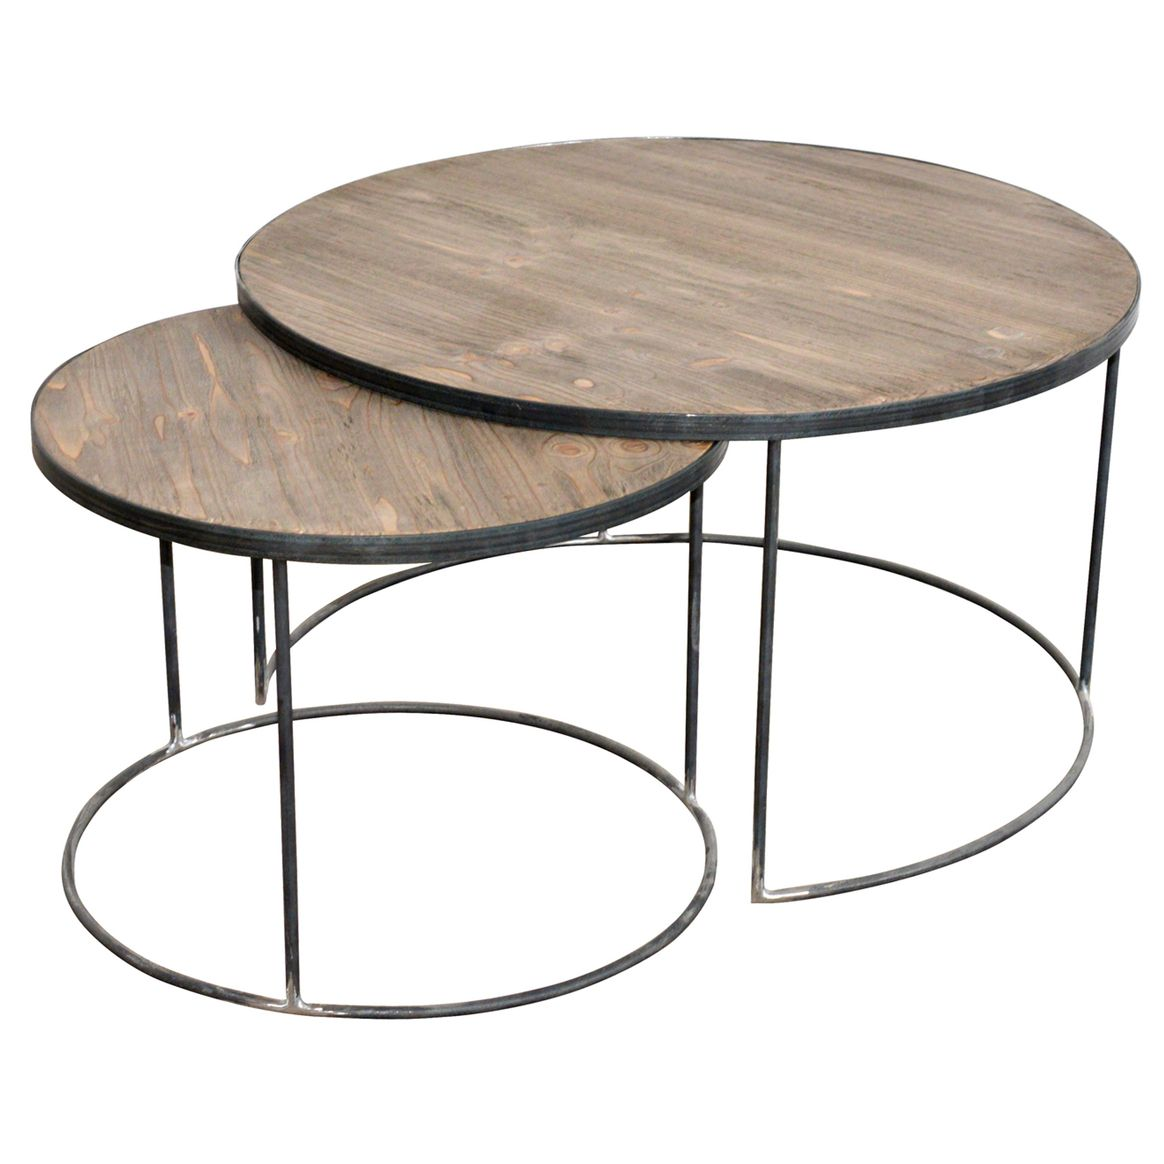 French Set Of Two Round Coffee Tables Iron Coffee Table Dark Wood Coffee Table Nesting Coffee Tables [ 1164 x 1164 Pixel ]